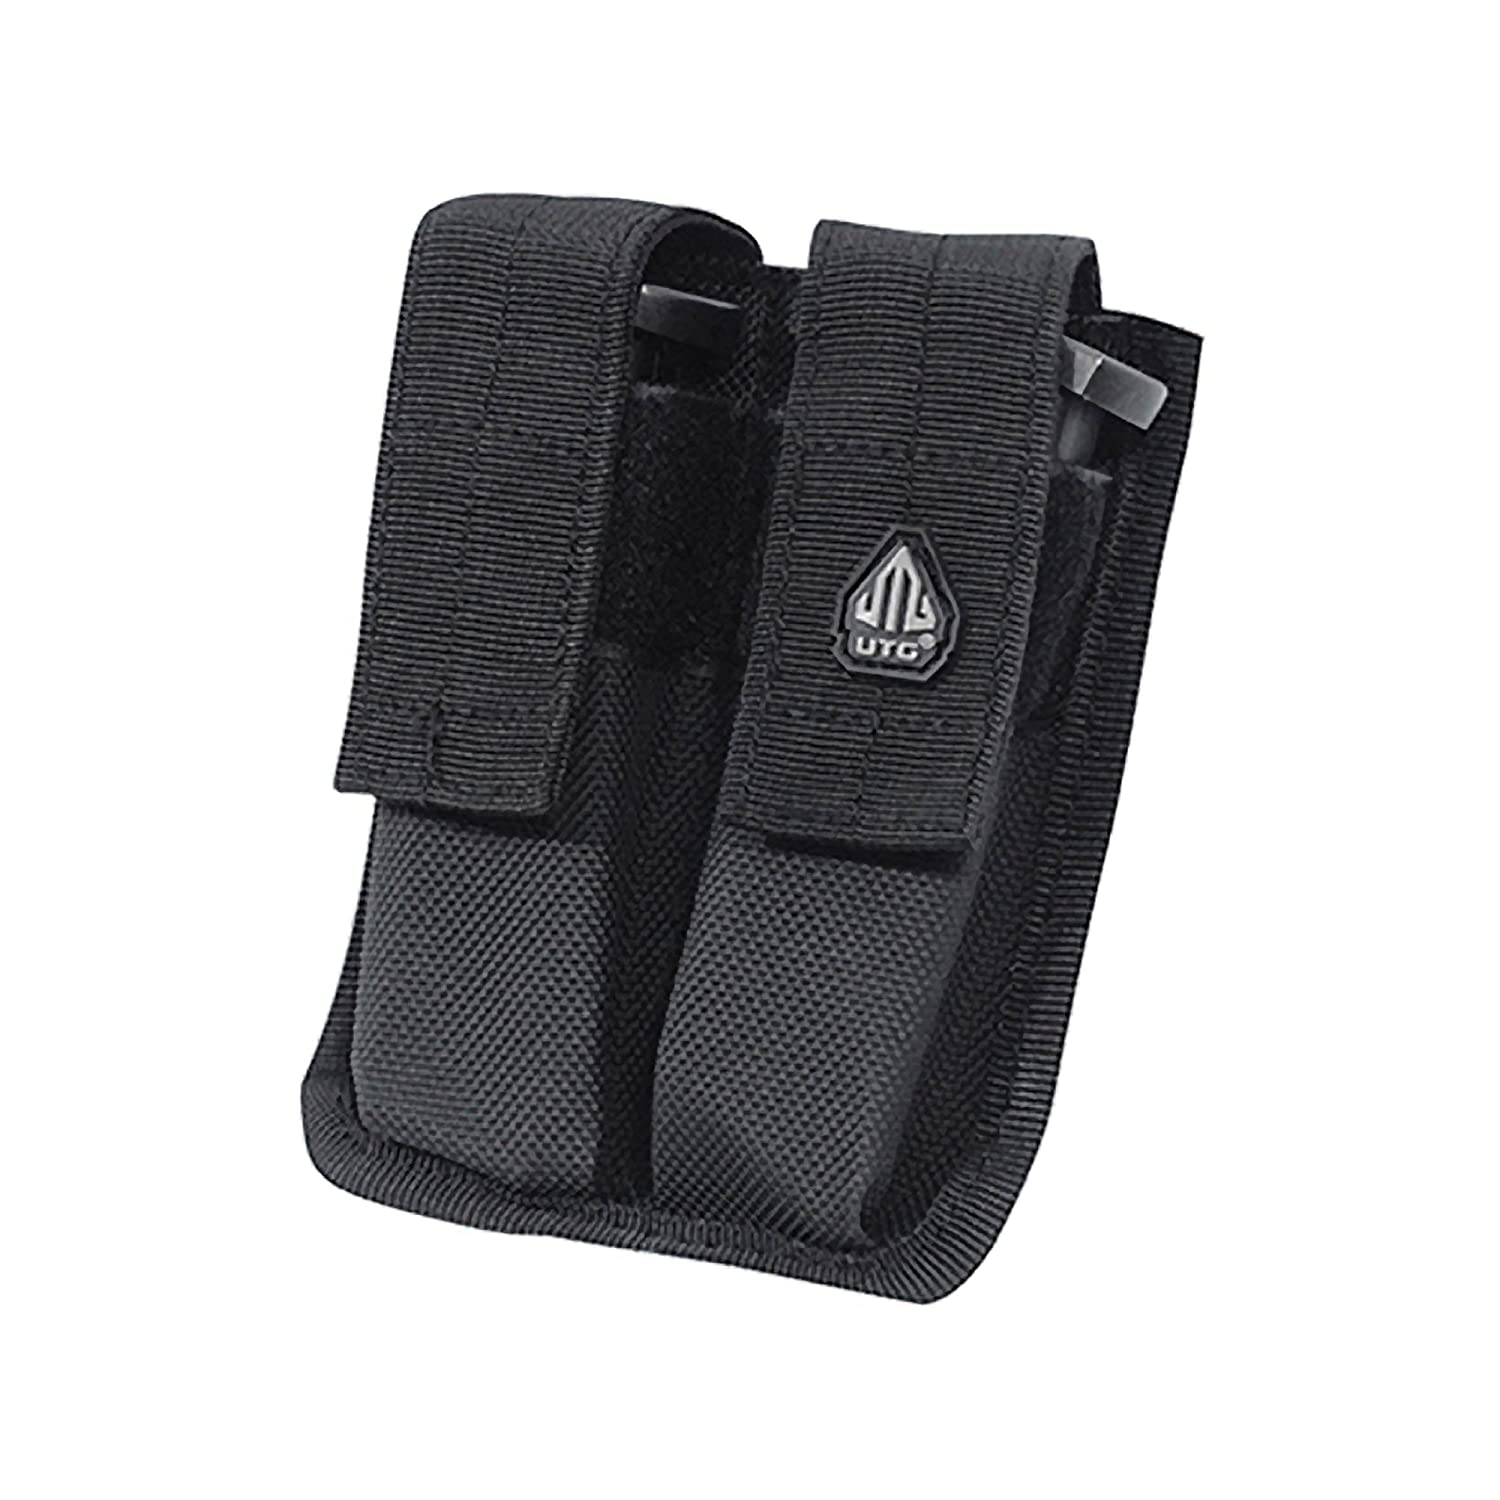 Amazon com utg dual pistol mag pouch velcro close airsoft holsters sports outdoors